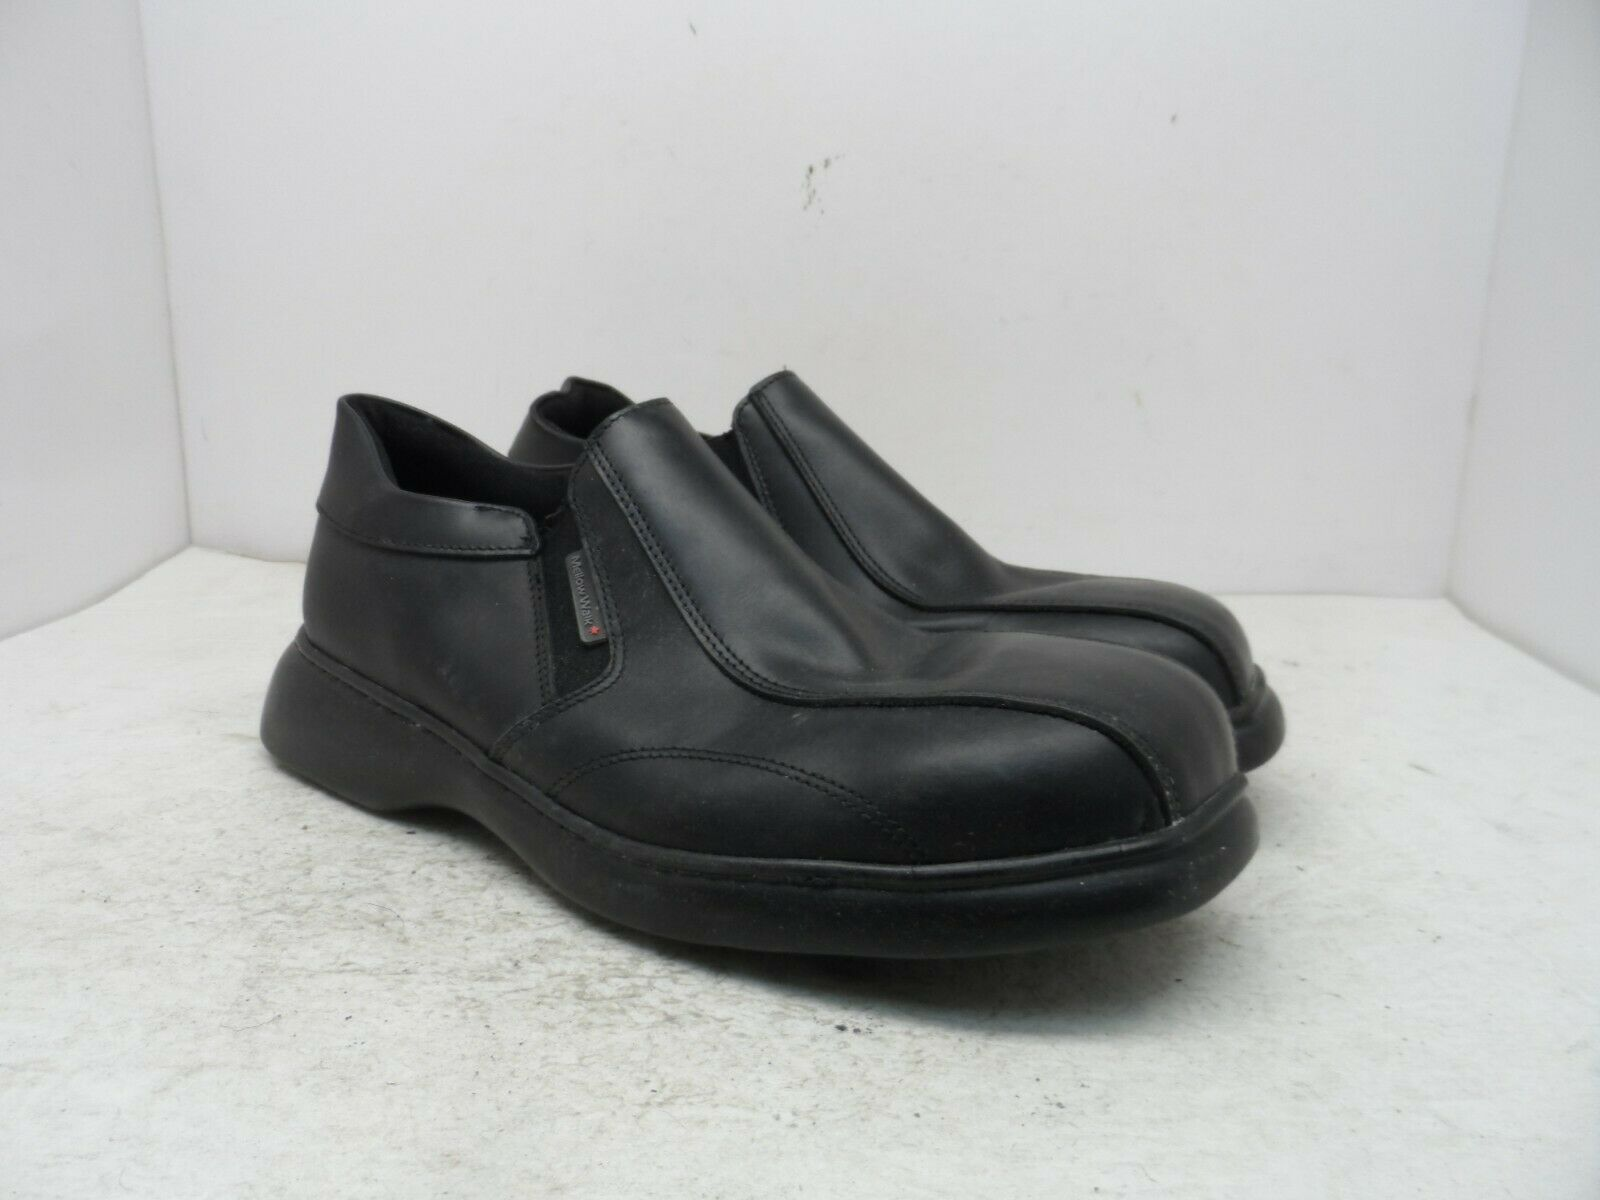 Mellow Walk Men's Sole Patrick Synthetic Casual Slip On Shoes Black Size 9EE